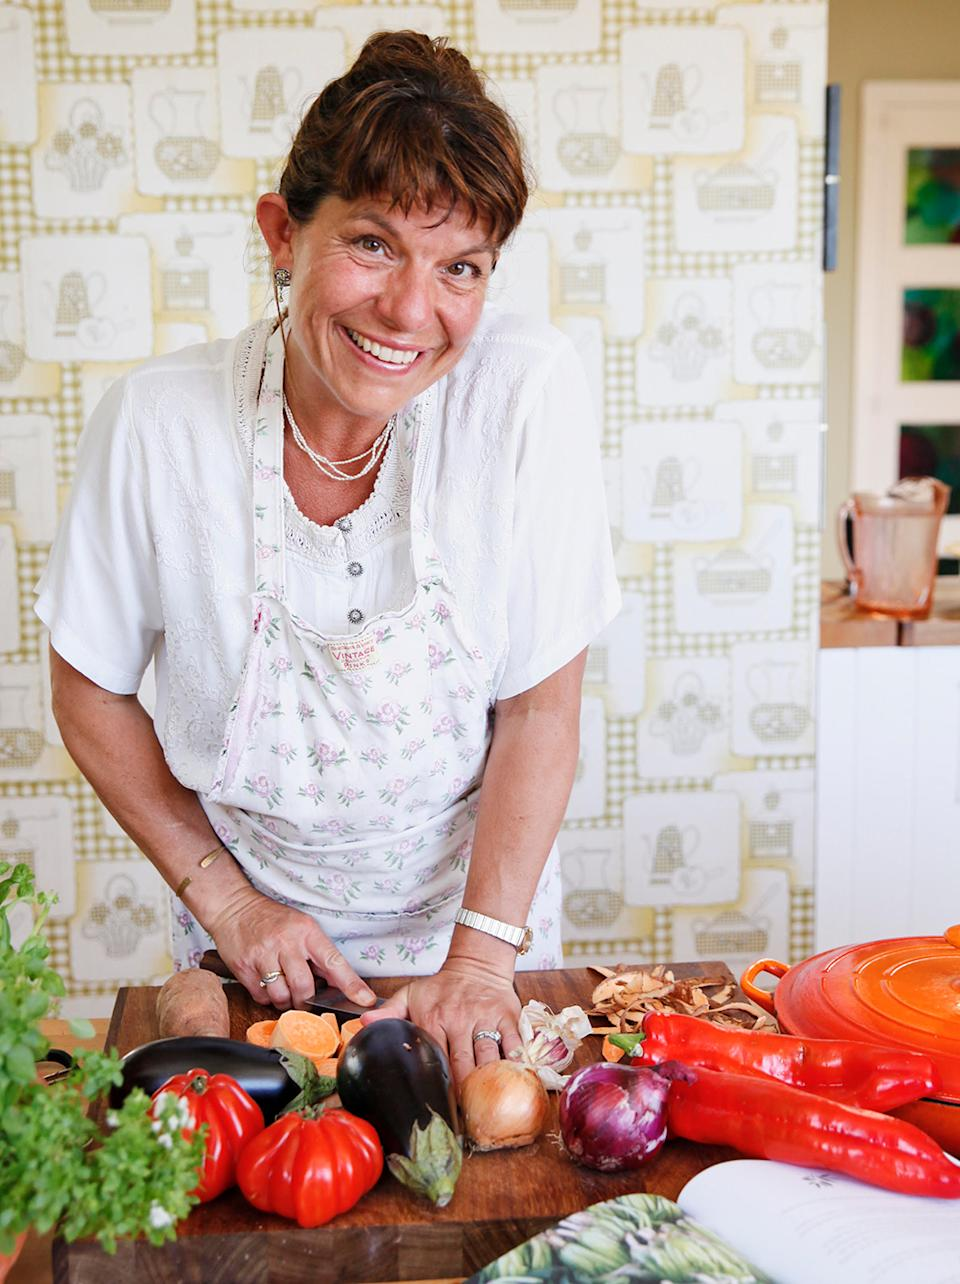 Charlotte Hastings from Therapy Kitchen believes cooking therapy is so good for couples as they they can physically experience their impact on one another, as opposed to talk therapy, which is more abstract